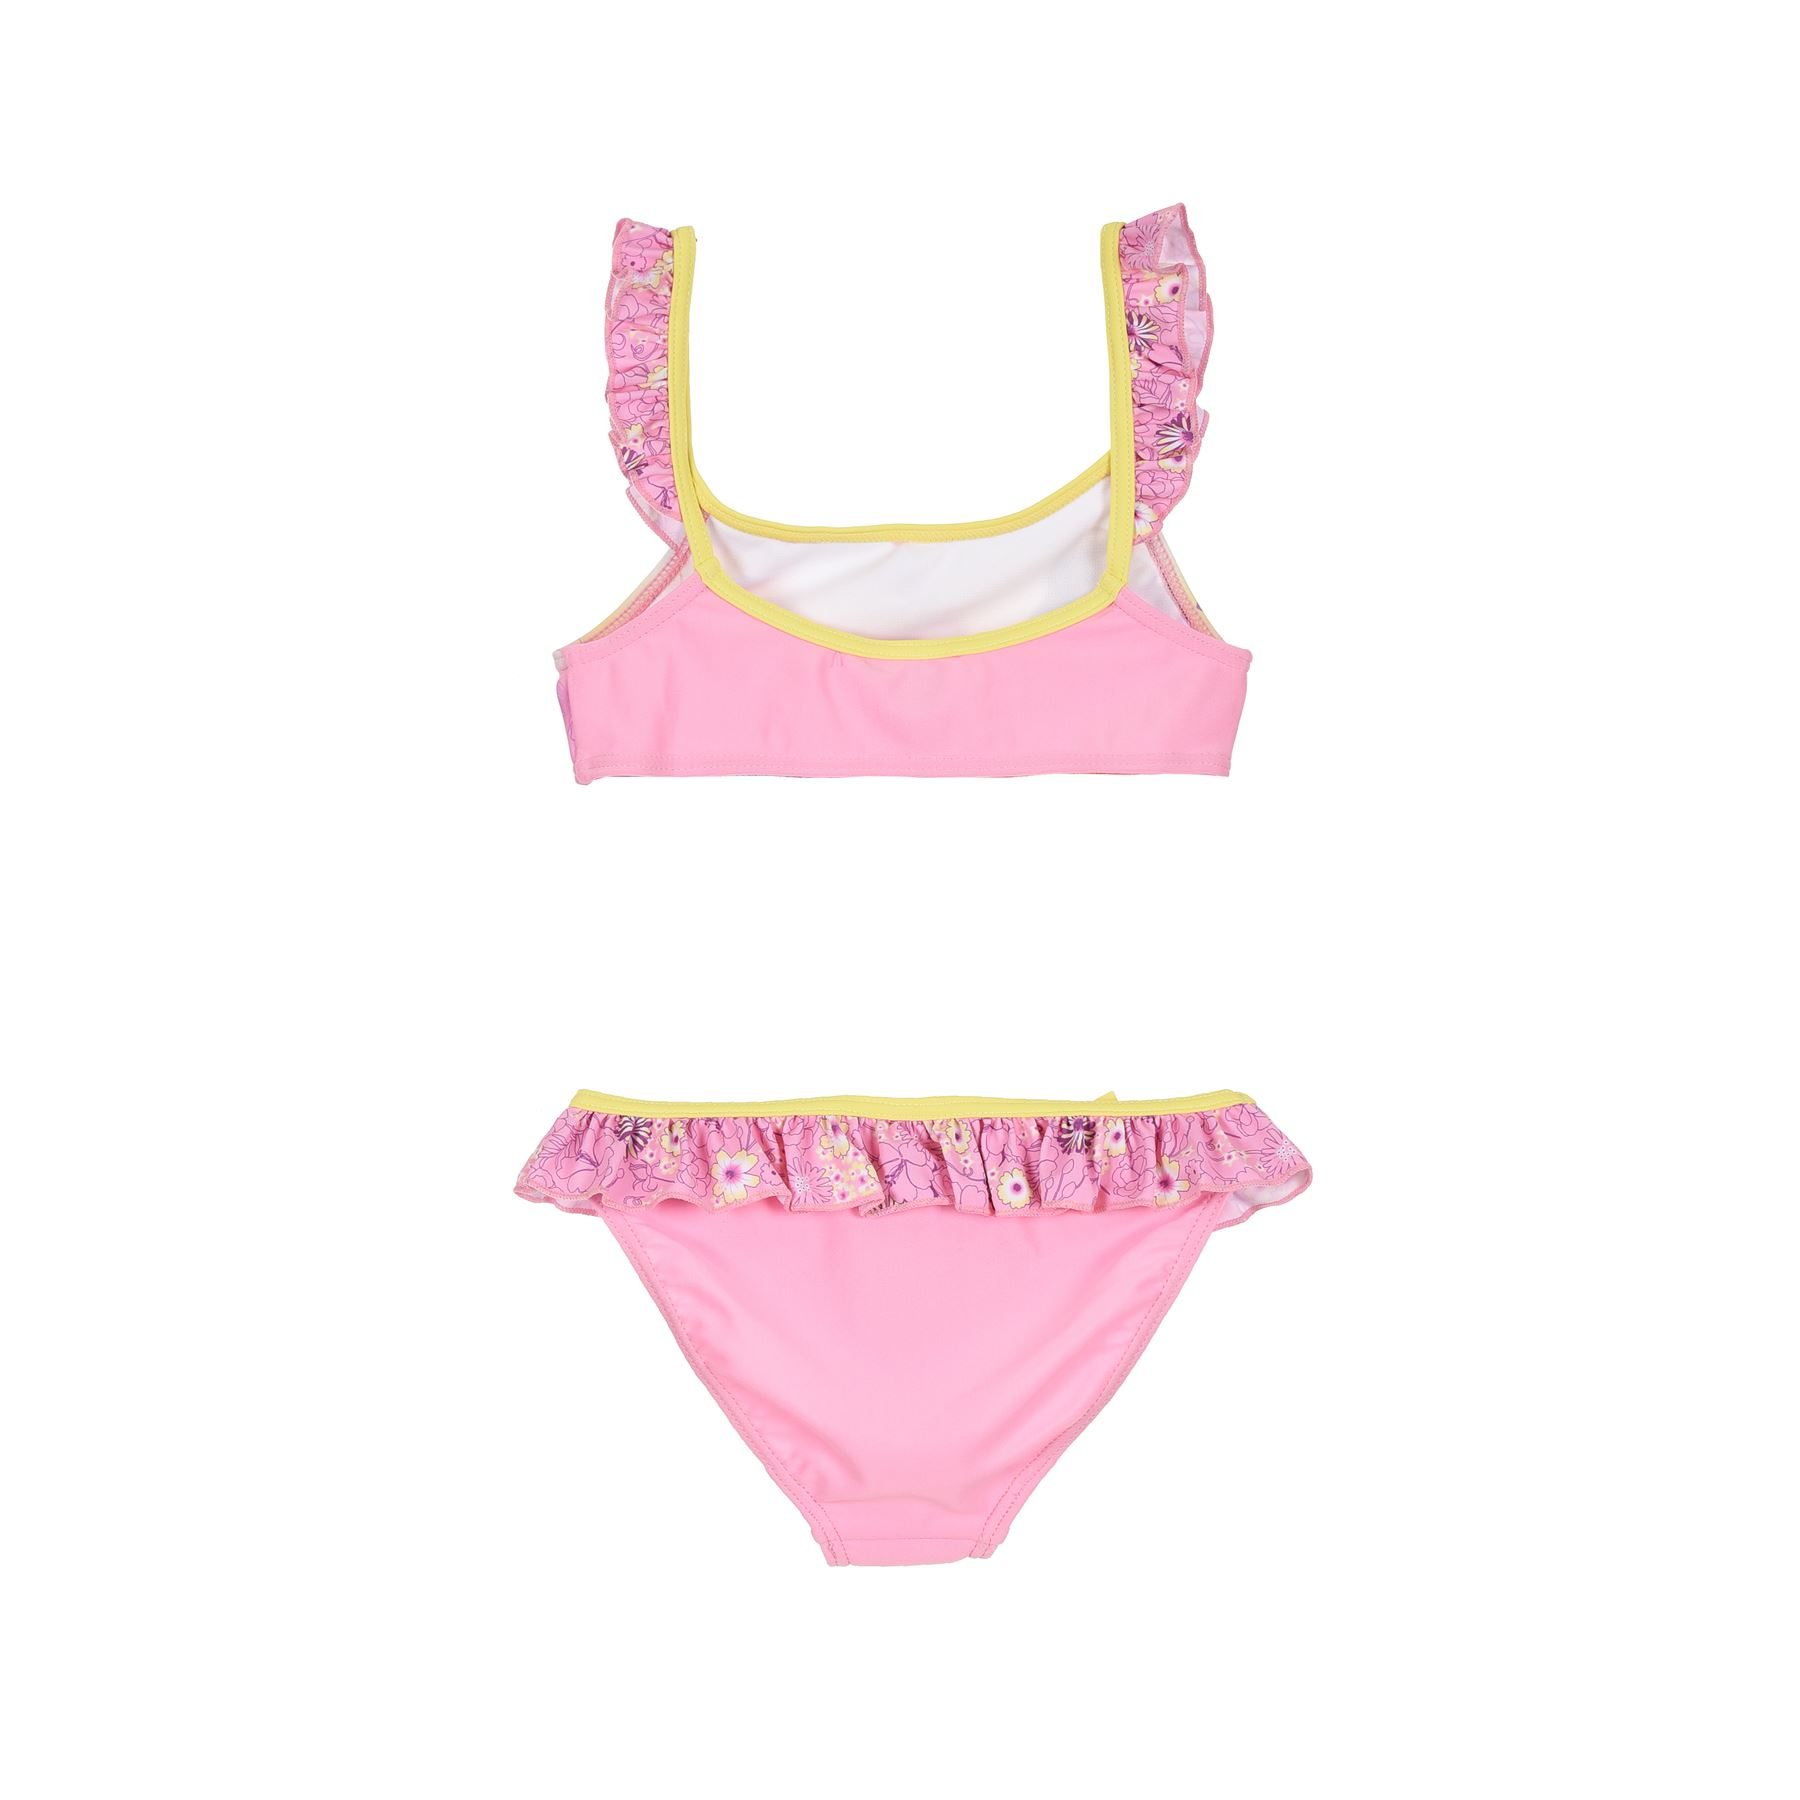 Girls-Bikini-Set-Childrens-Kids-Swimming-Costume-Age-3-8-Years thumbnail 36